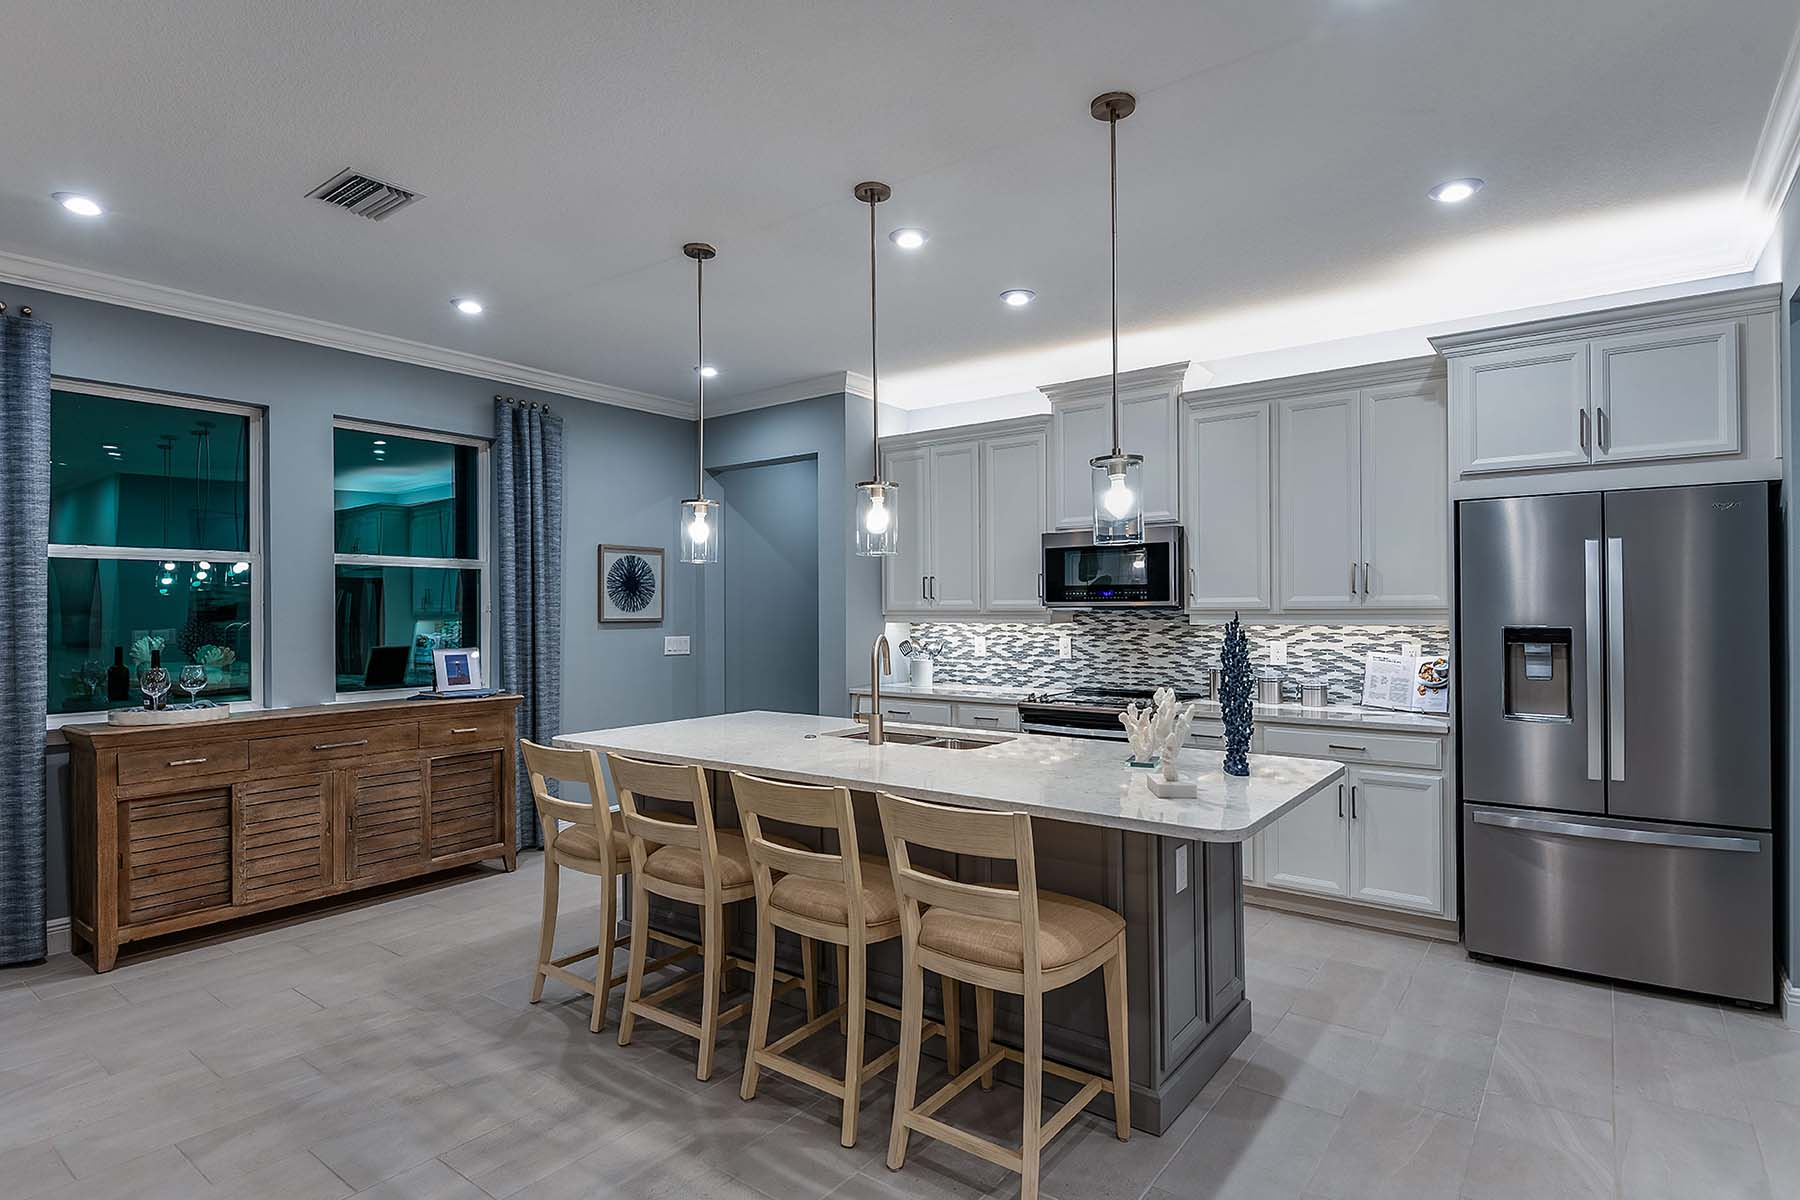 Oceana Plan Kitchen at Bonavie Cove in Fort Myers Florida by Mattamy Homes